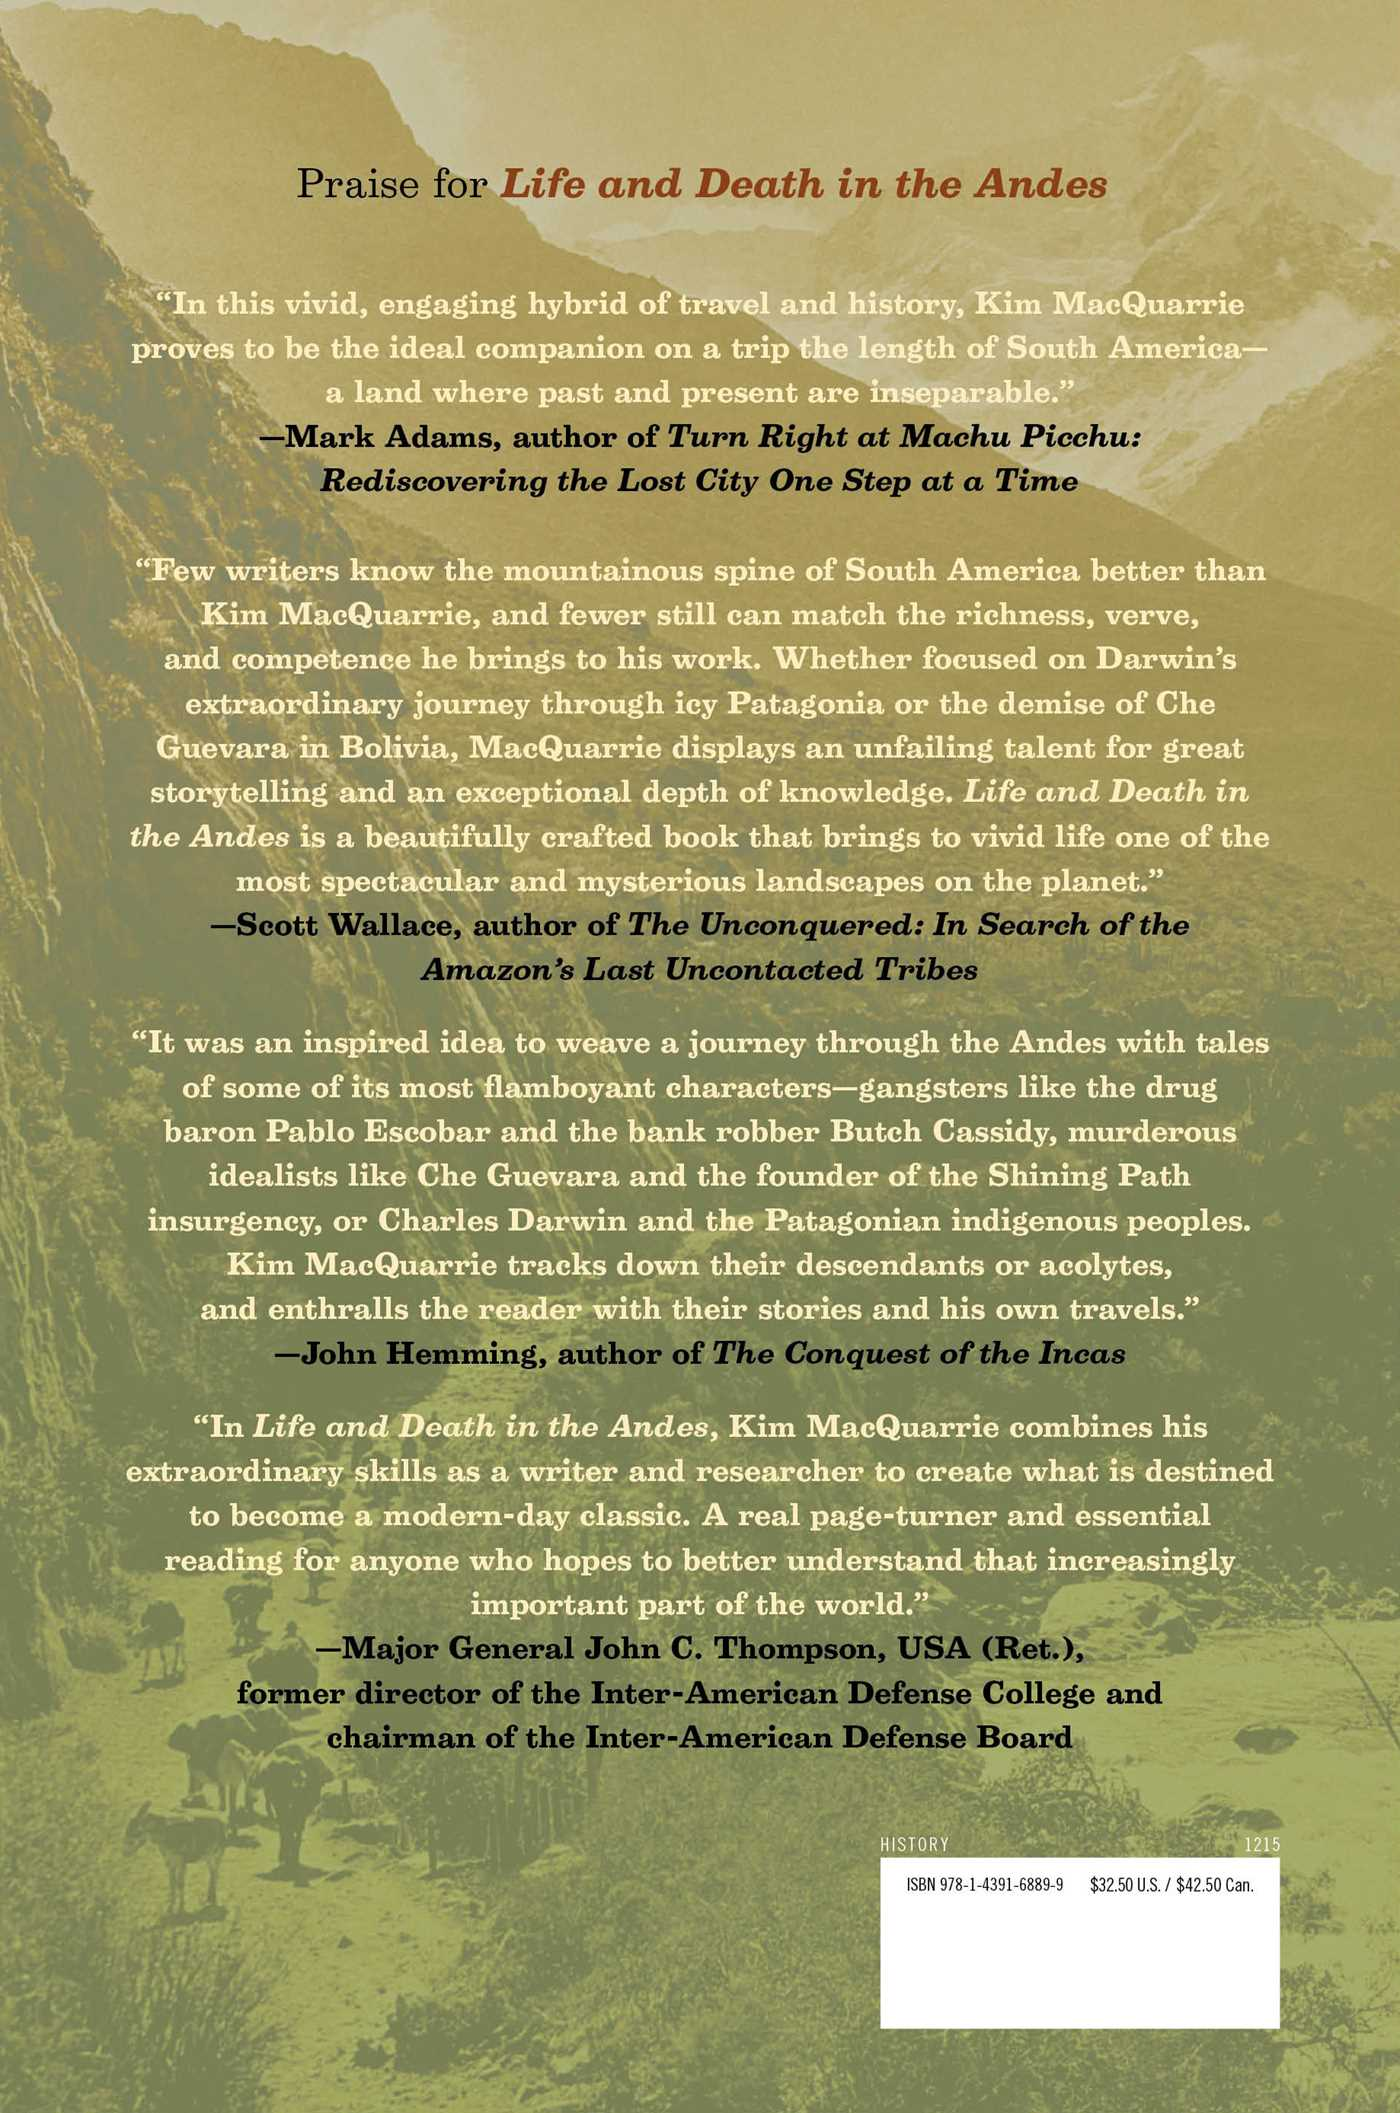 Life and death in the andes 9781439168899 hr back